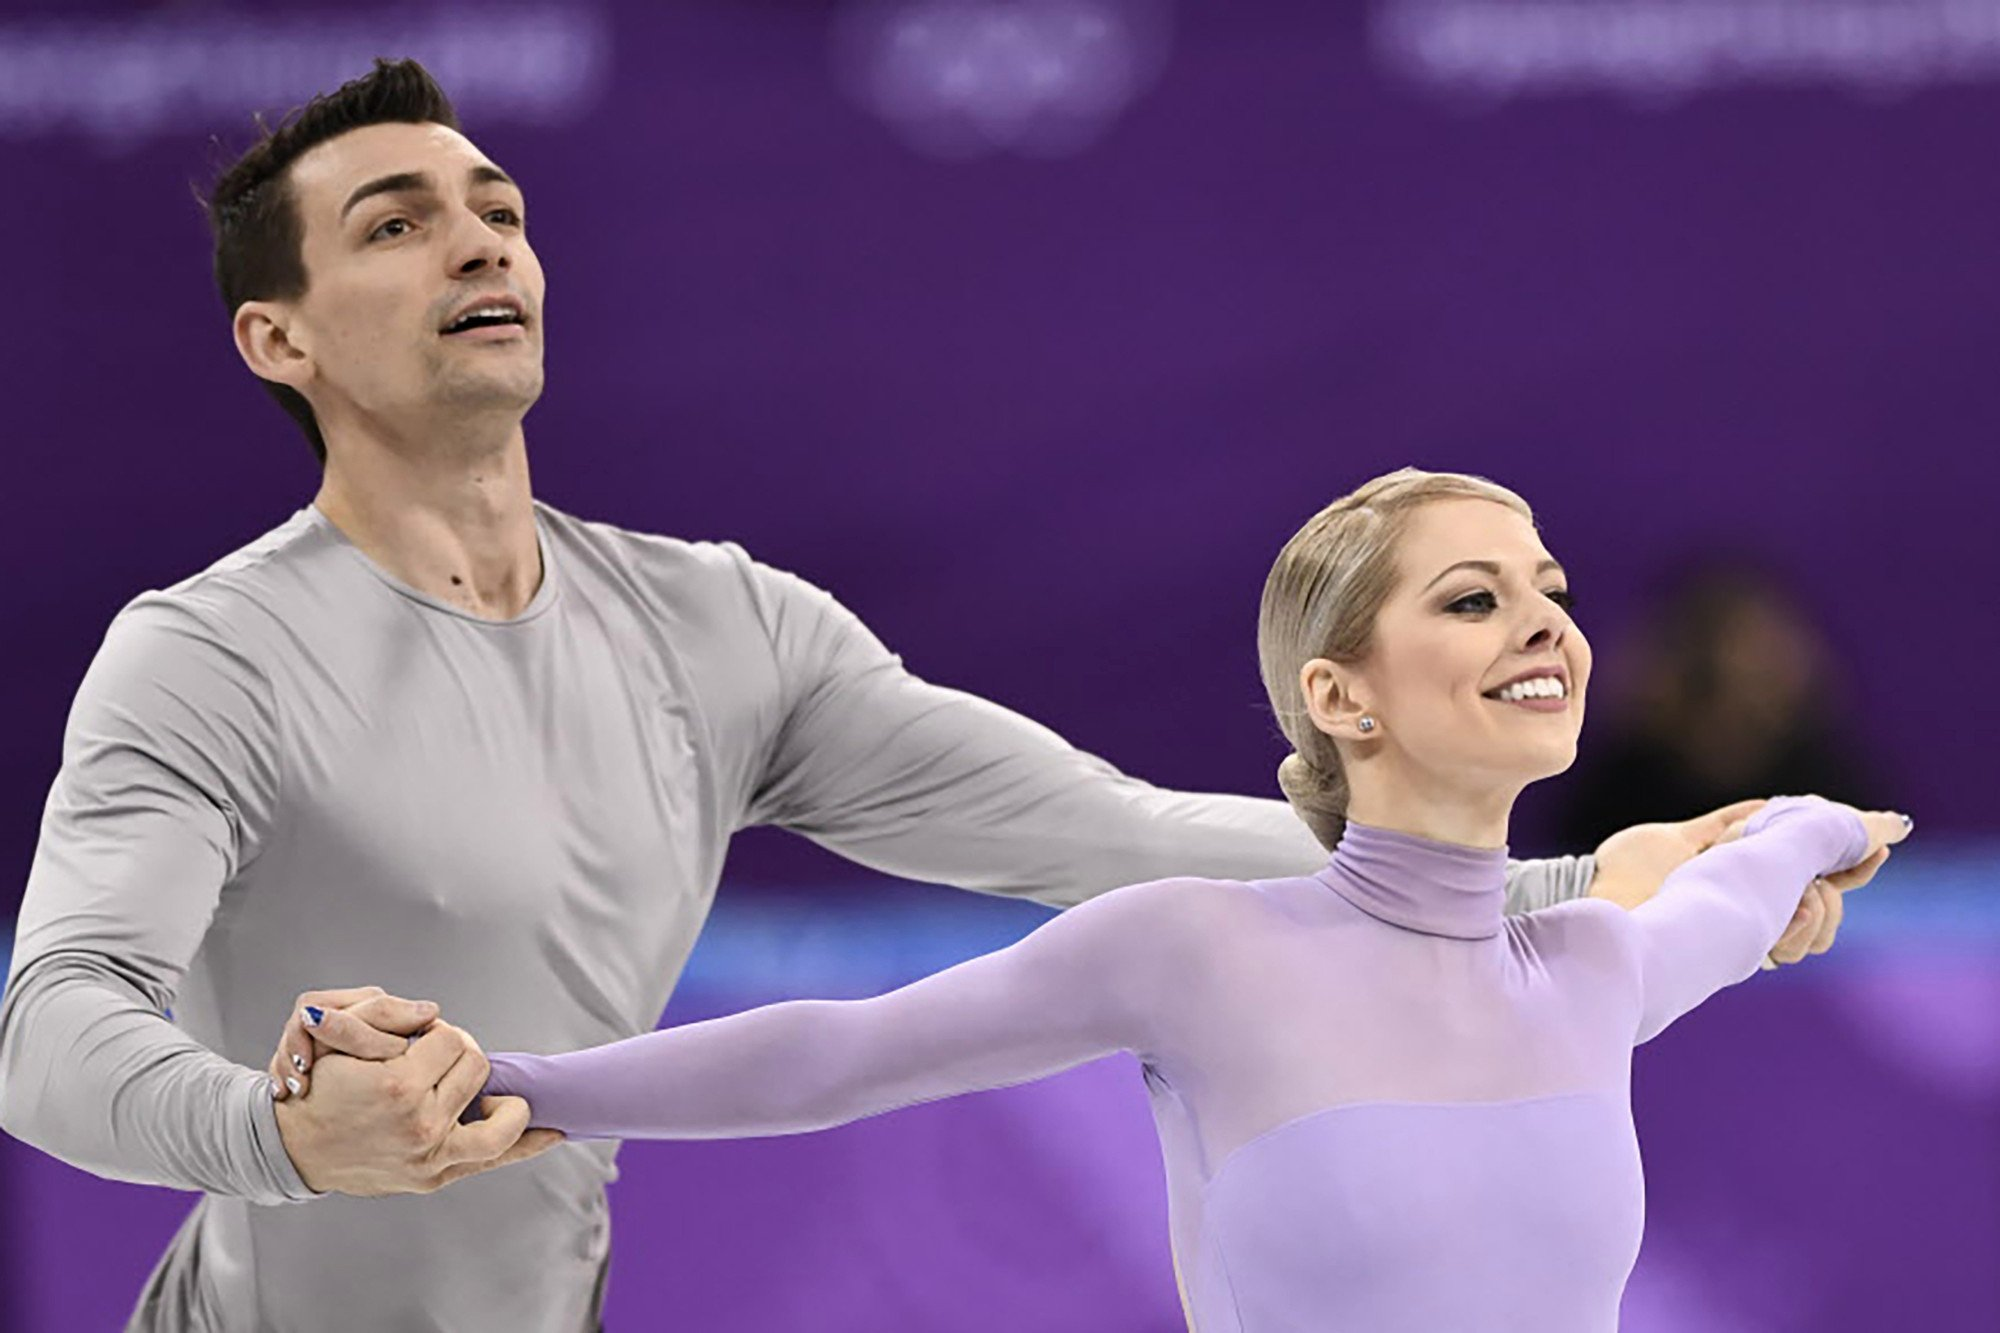 Olympic skating duo compete in honor of Florida shooting victims